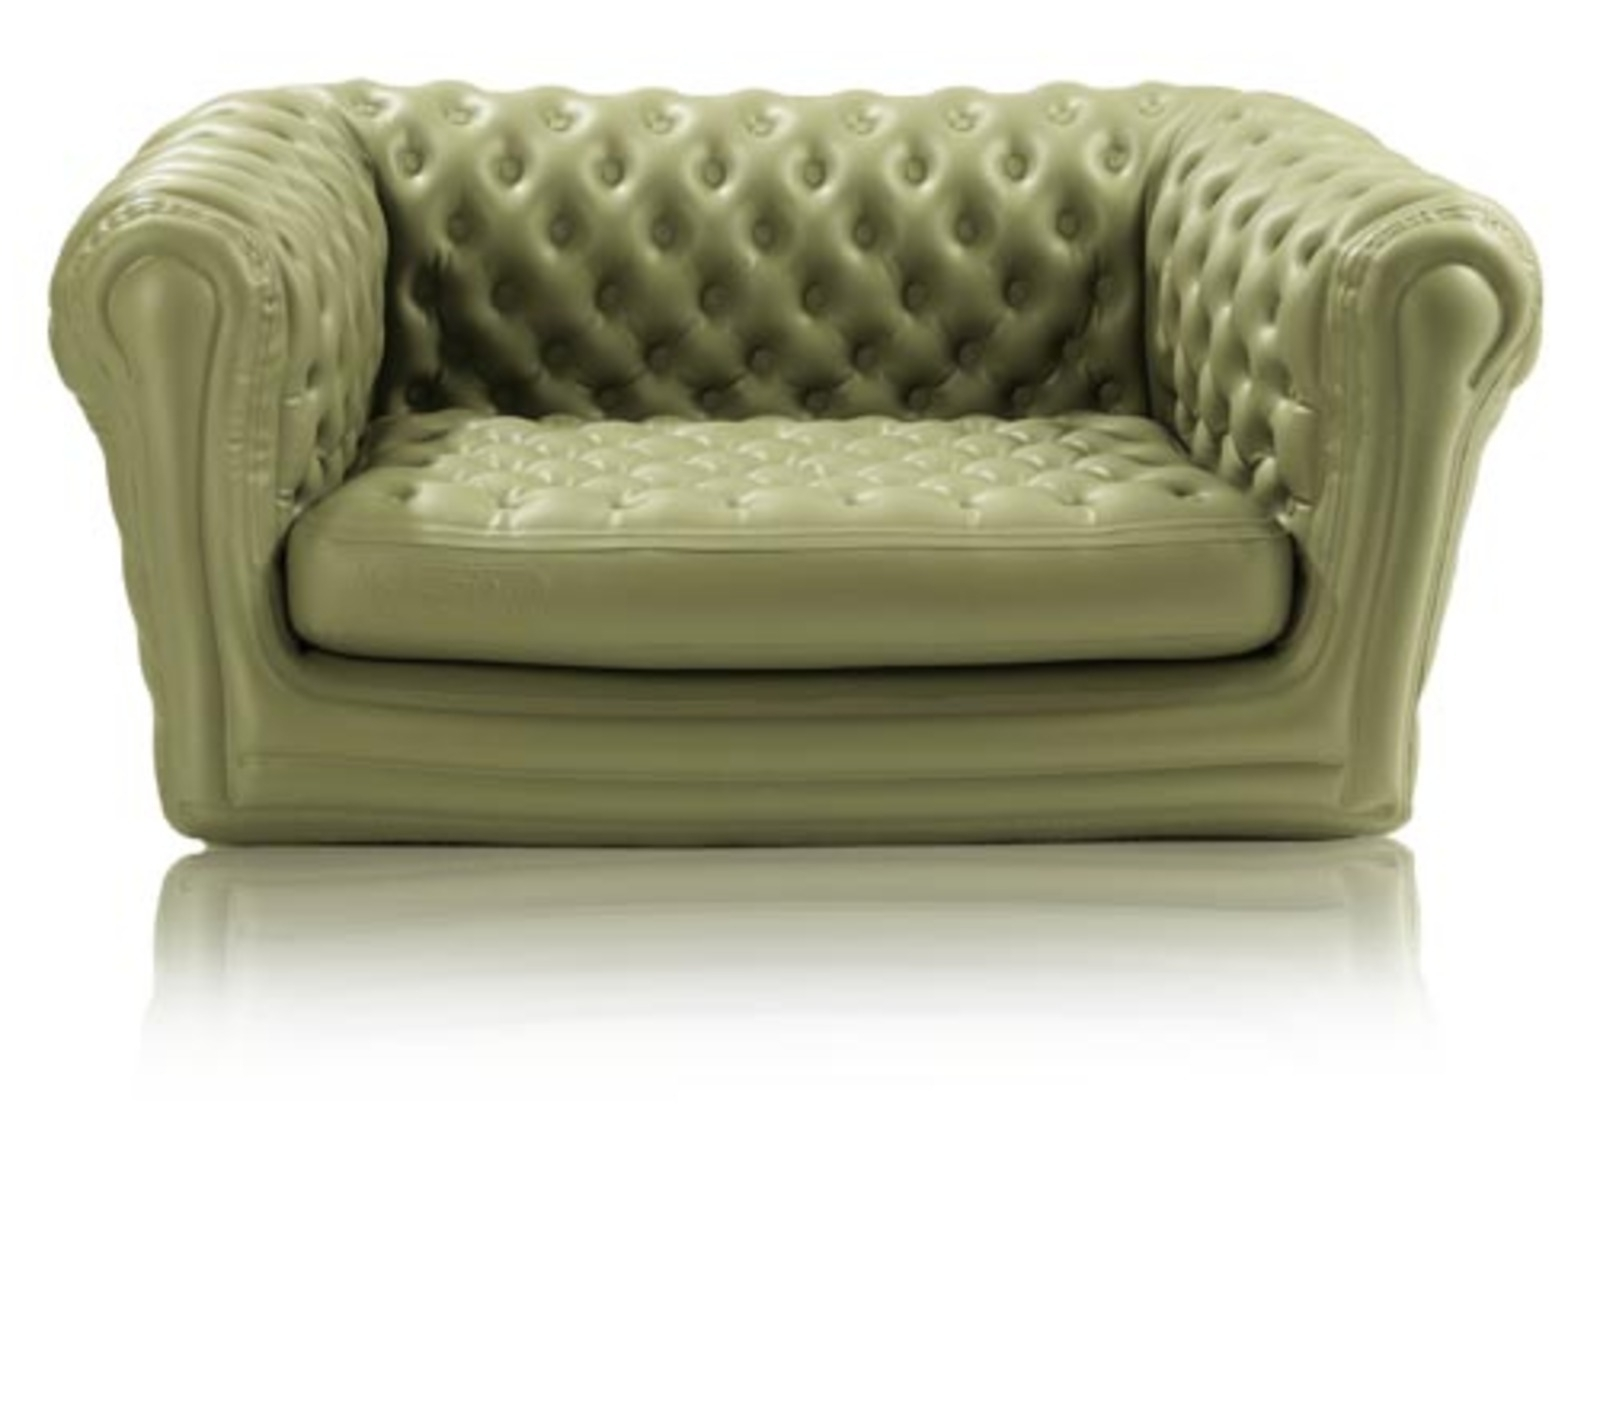 Famous Blofield Inflatable Chesterfield Furniture – Cool Hunting Throughout Inflatable Sofas And Chairs (View 3 of 15)